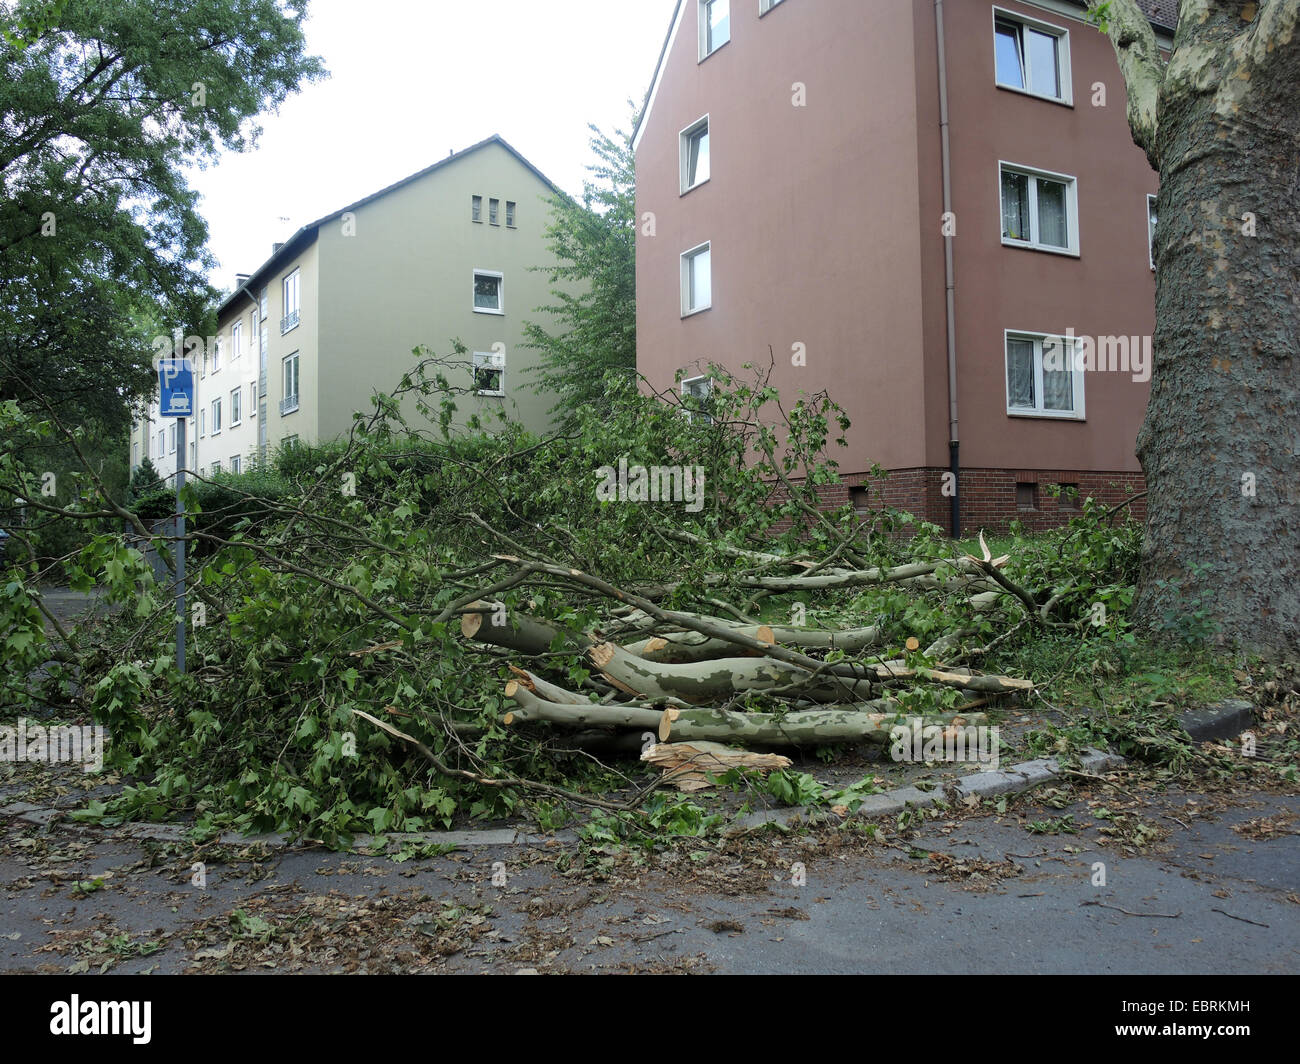 street after the storm front Ela at 2014-06-09, Germany, North Rhine-Westphalia, Ruhr Area, Bochum - Stock Image